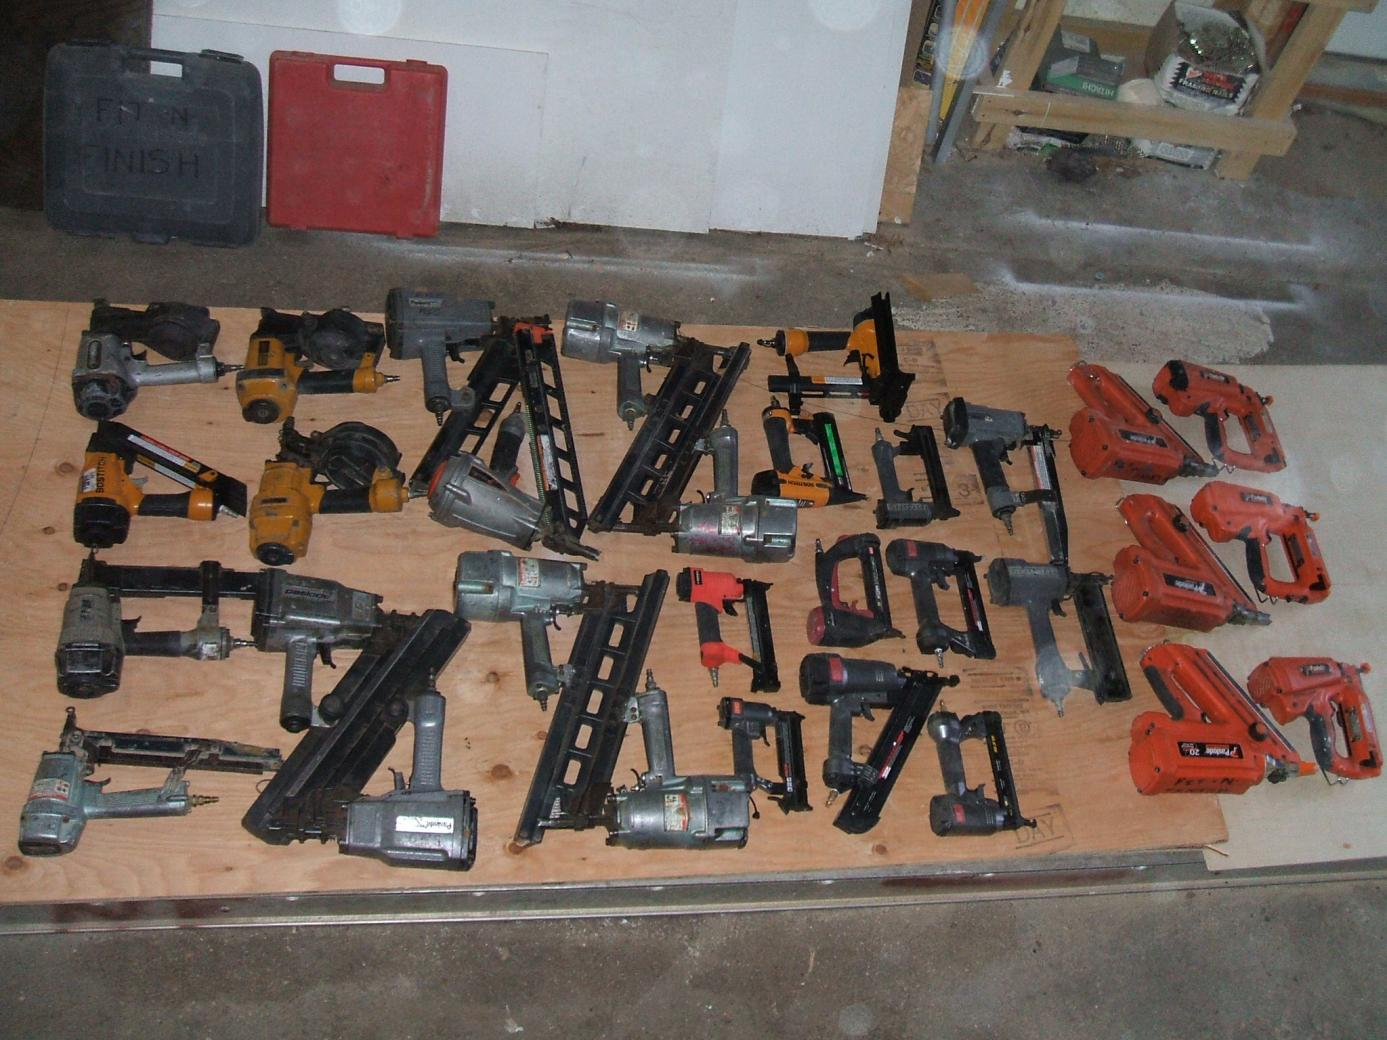 porter cable power tools-005.jpg